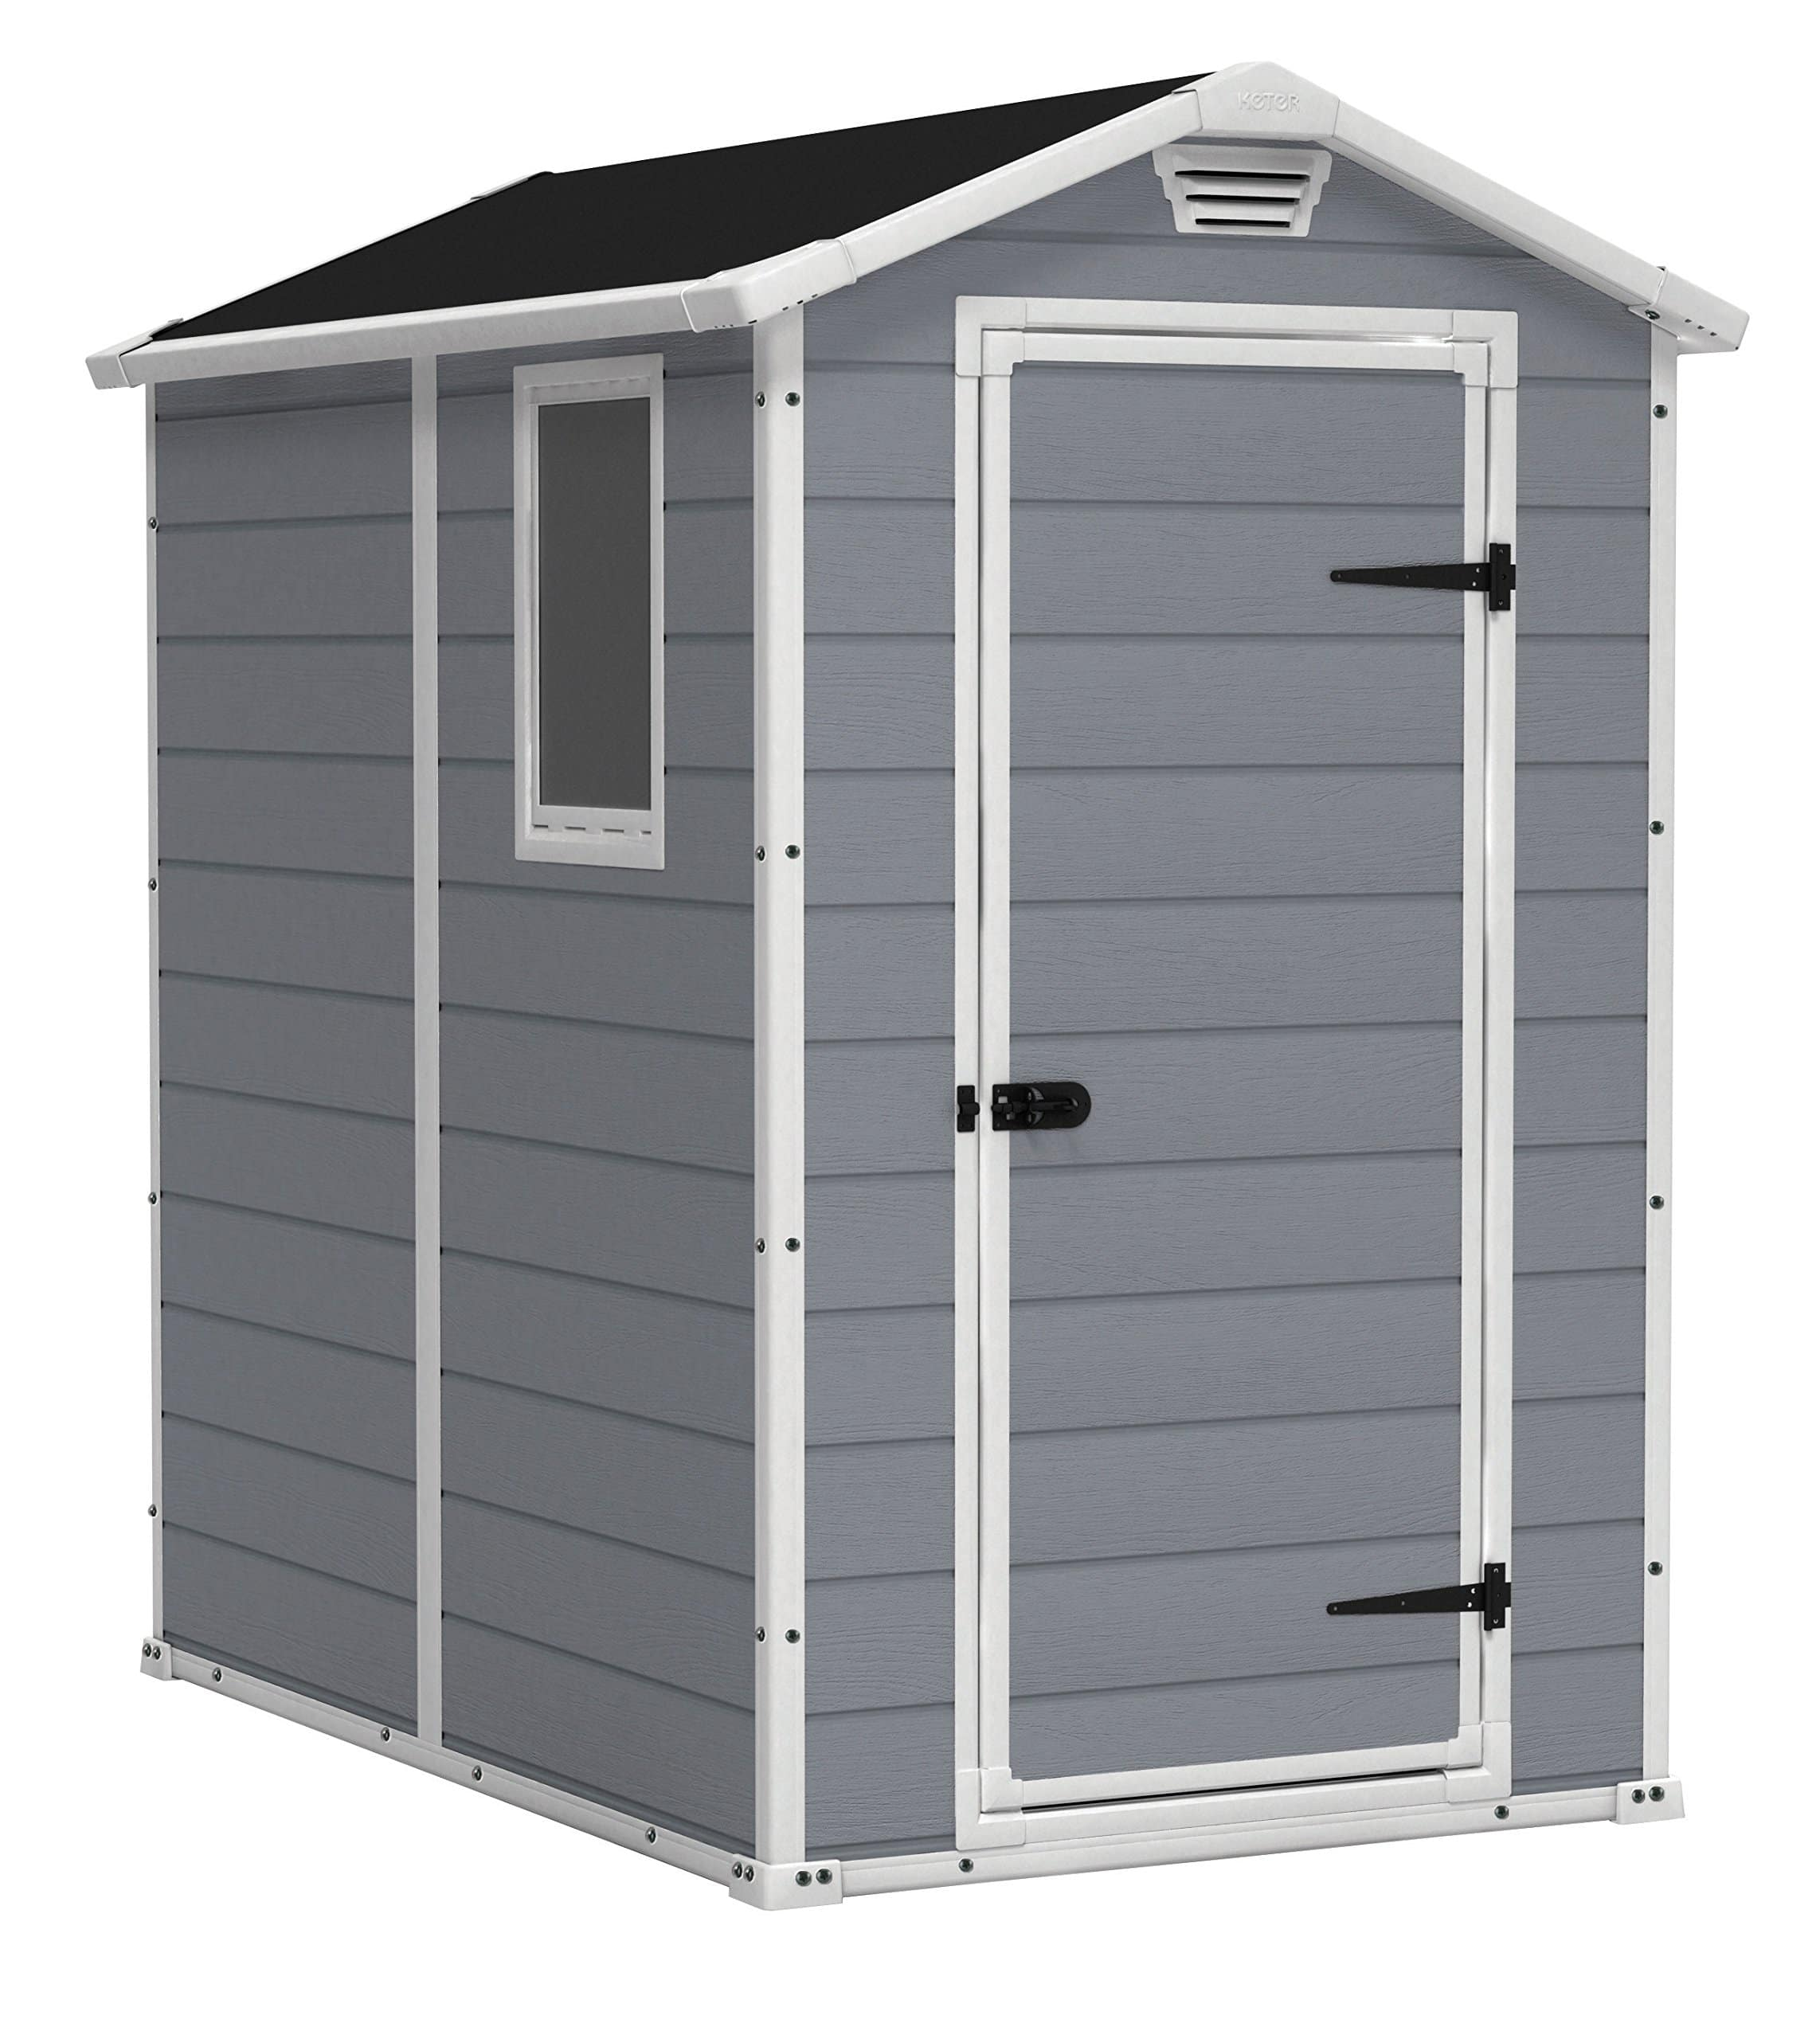 Keter outdoor poly shed 4 x 6 $499.99 at Amazon